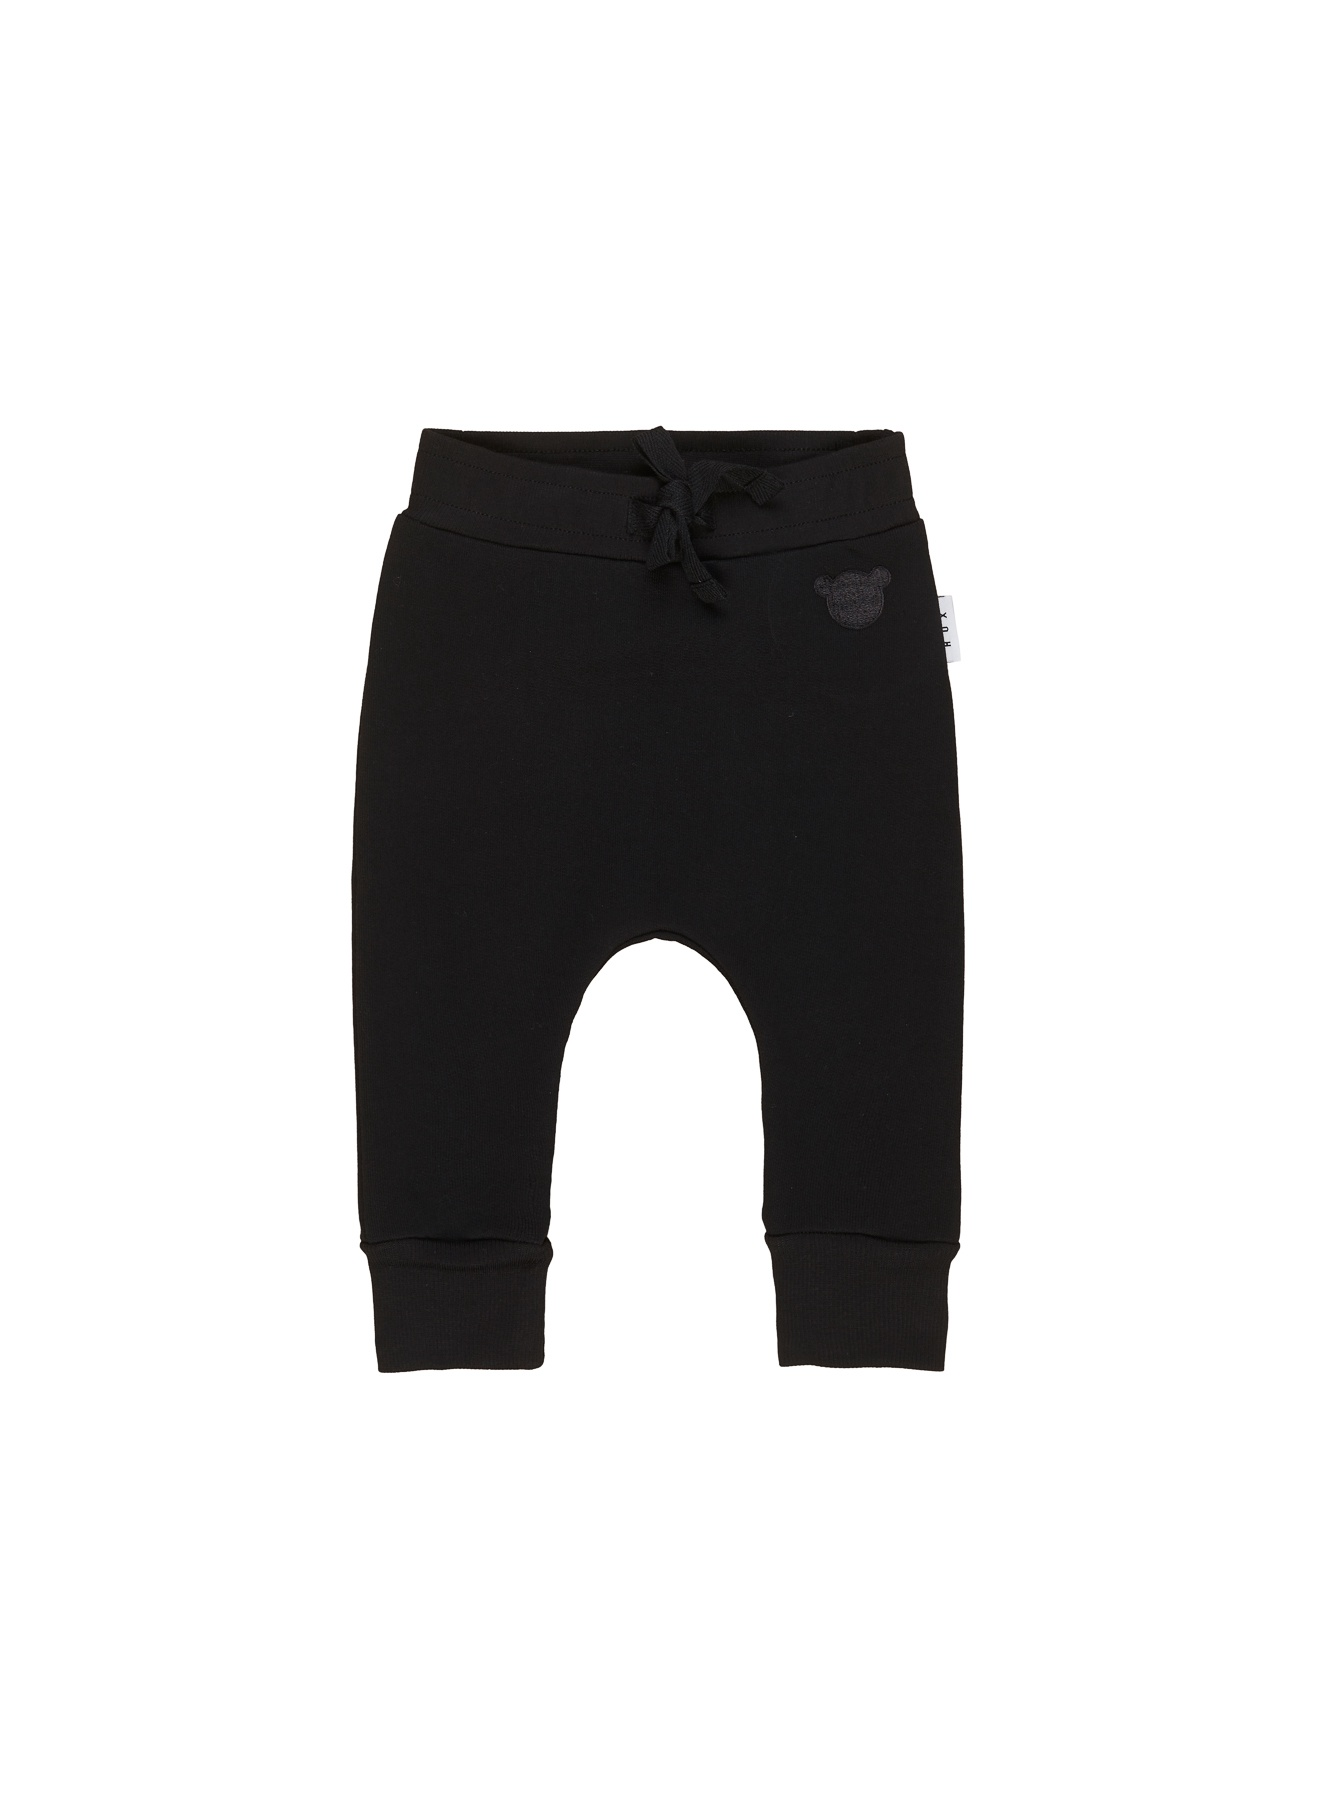 BLACK DROP CROTCH PANT KID